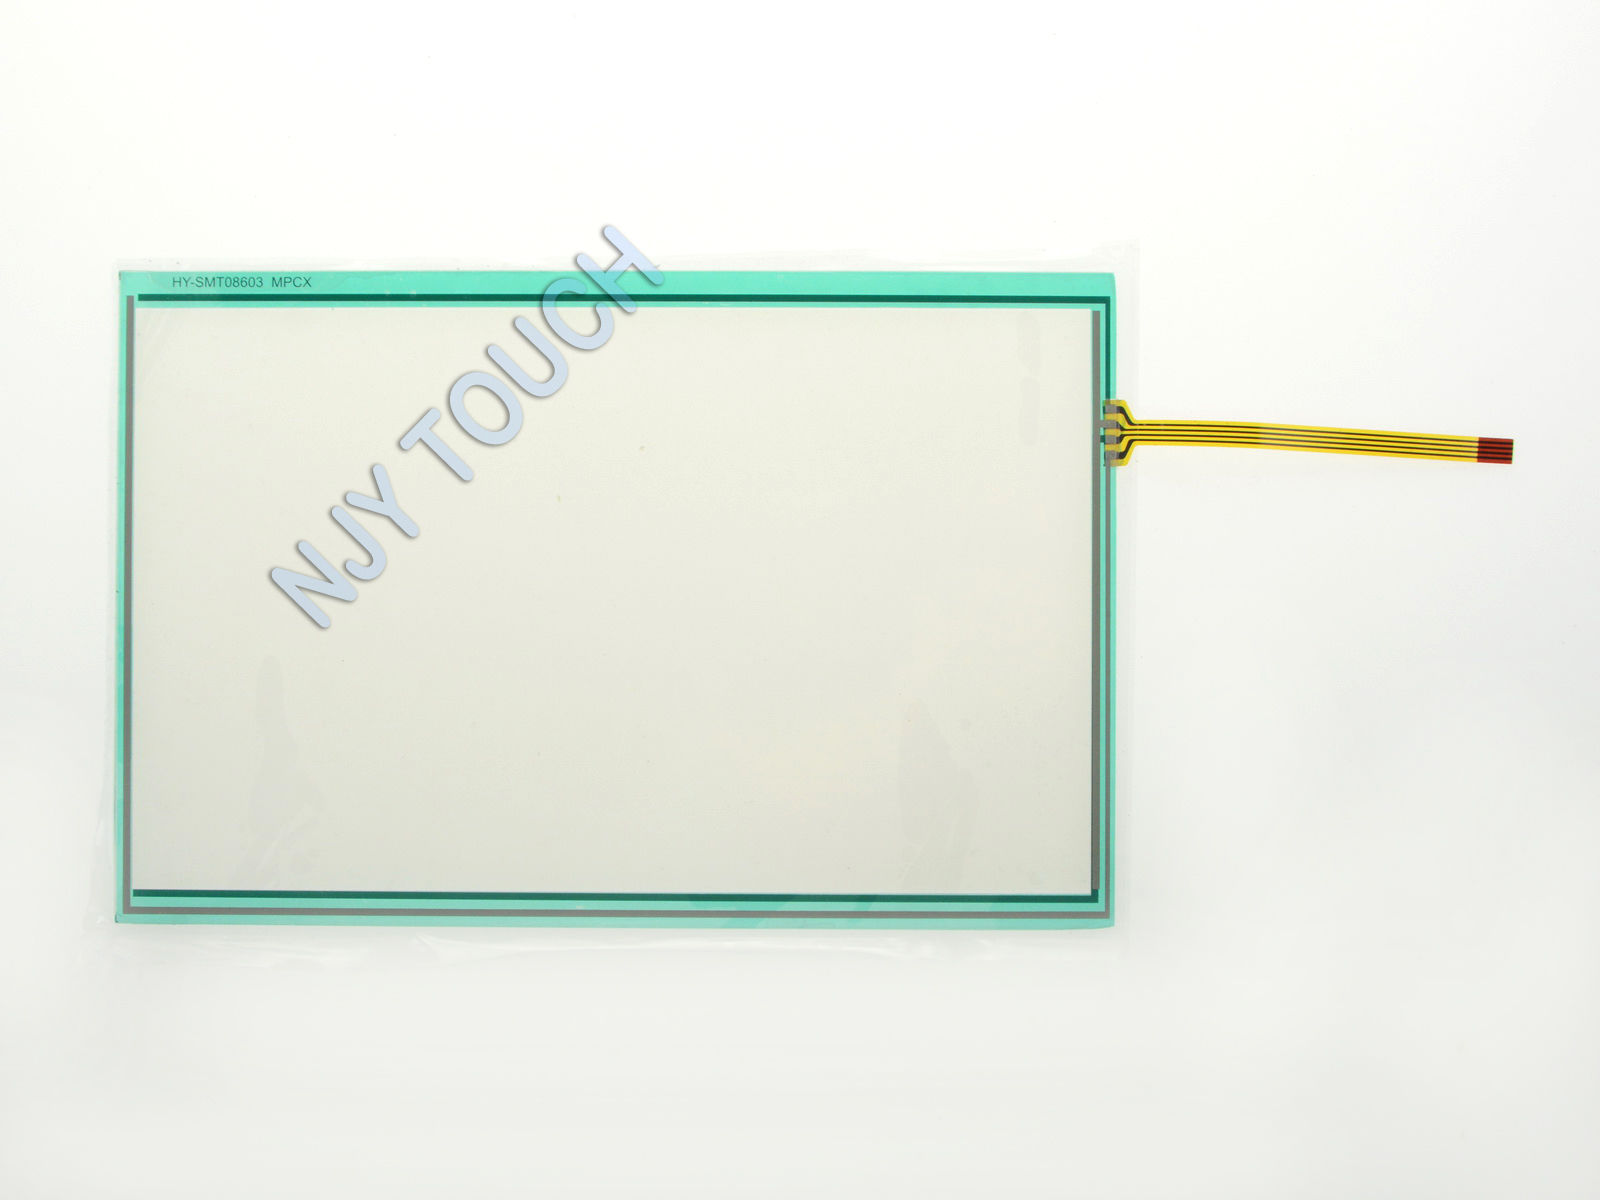 For Savin C2020 Copier Touch Screen